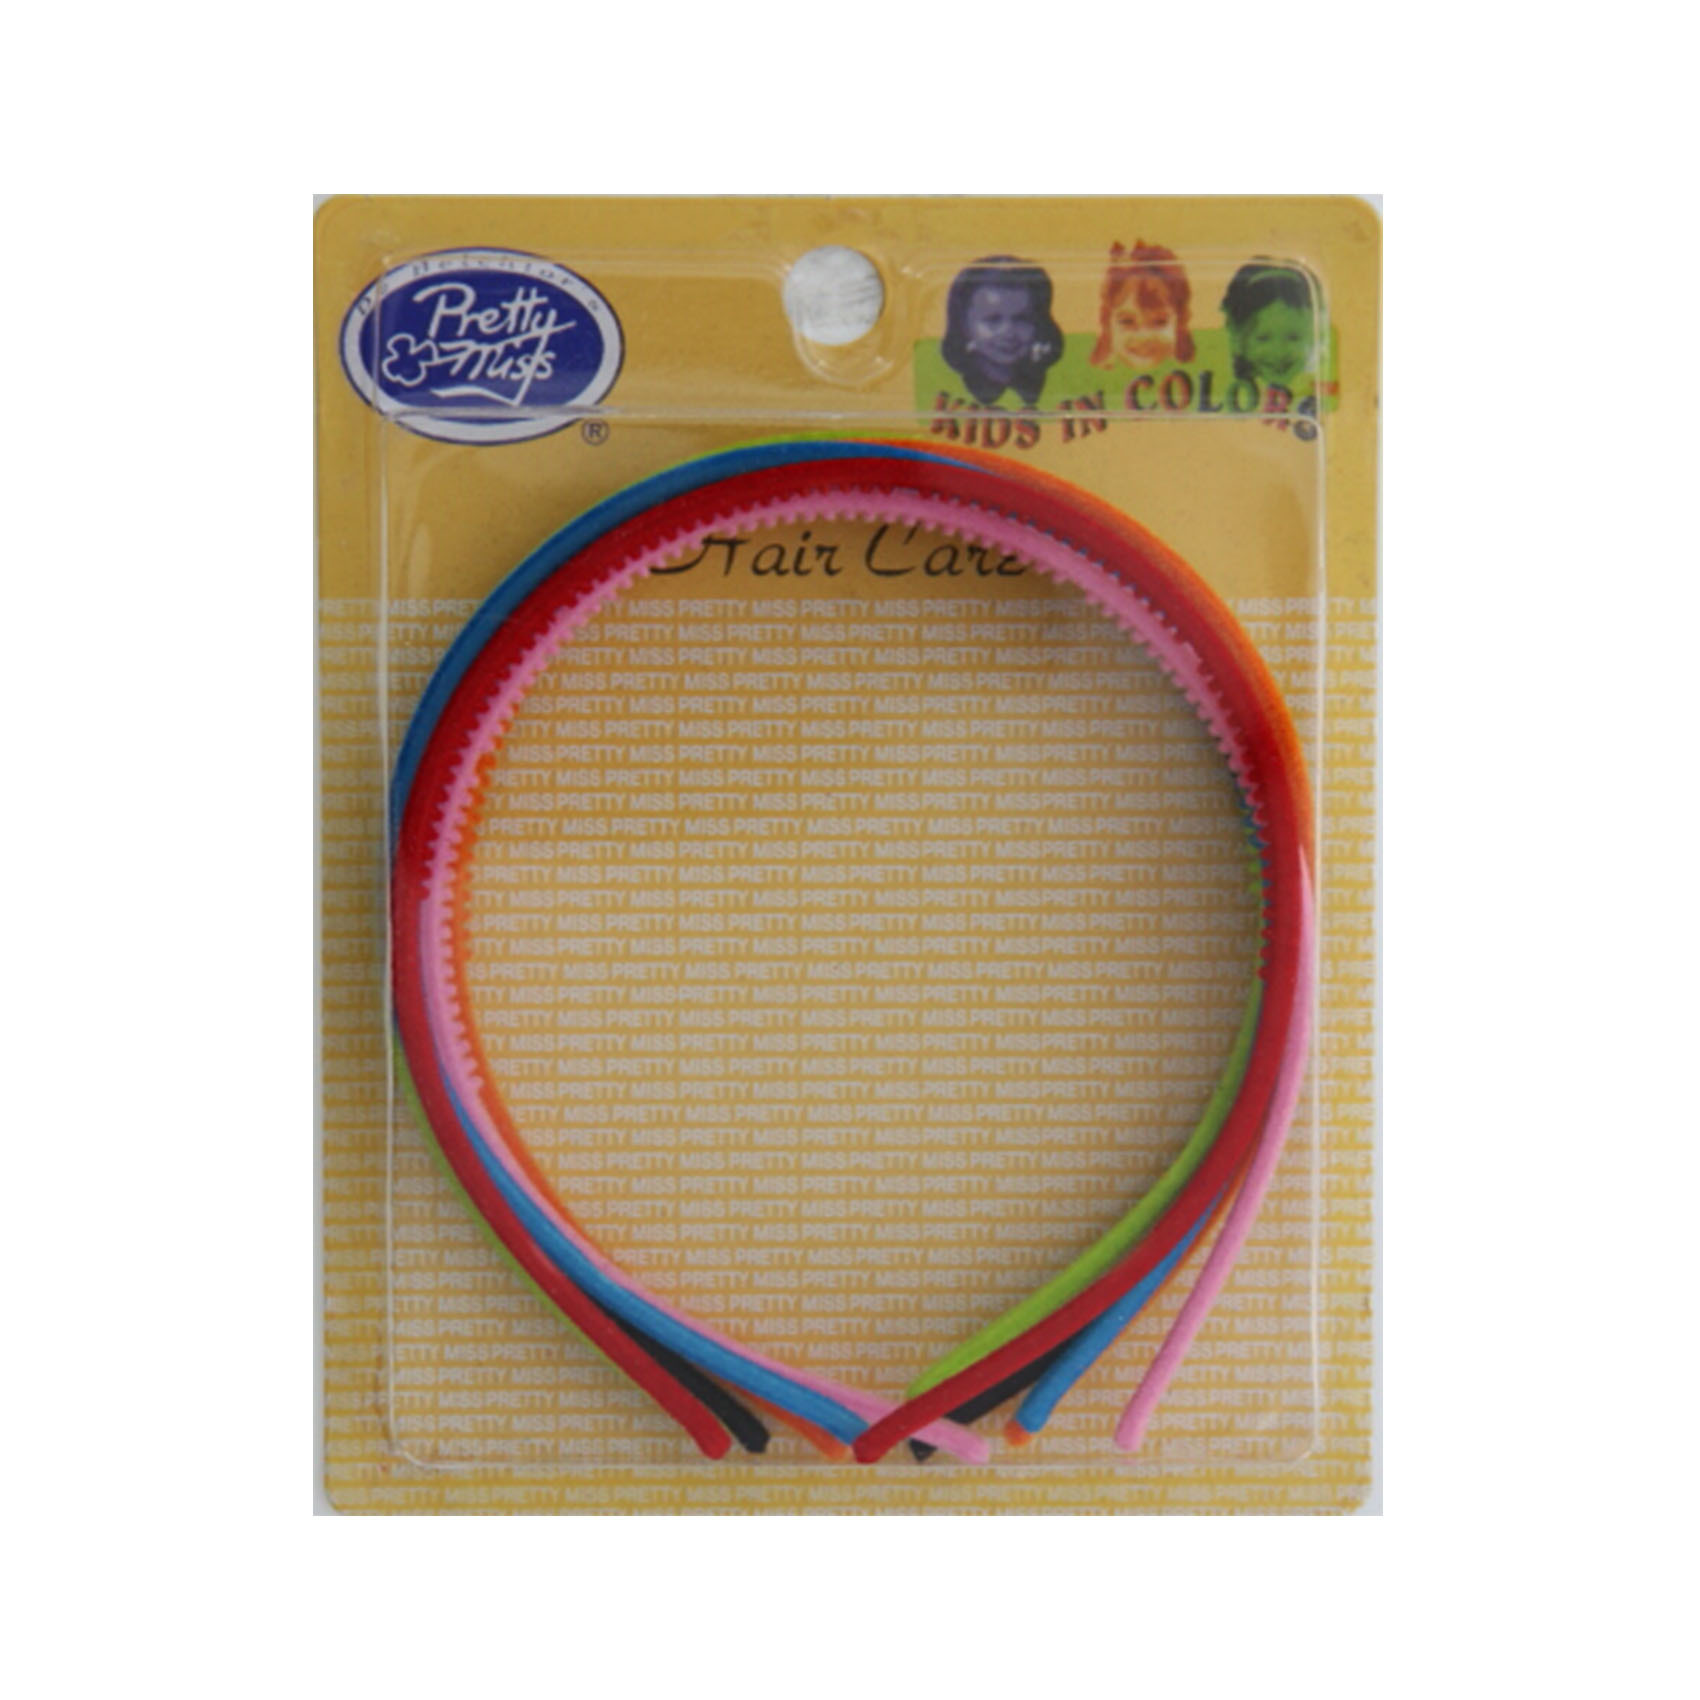 P/MISS HAIRBAND 25059/25064/25065